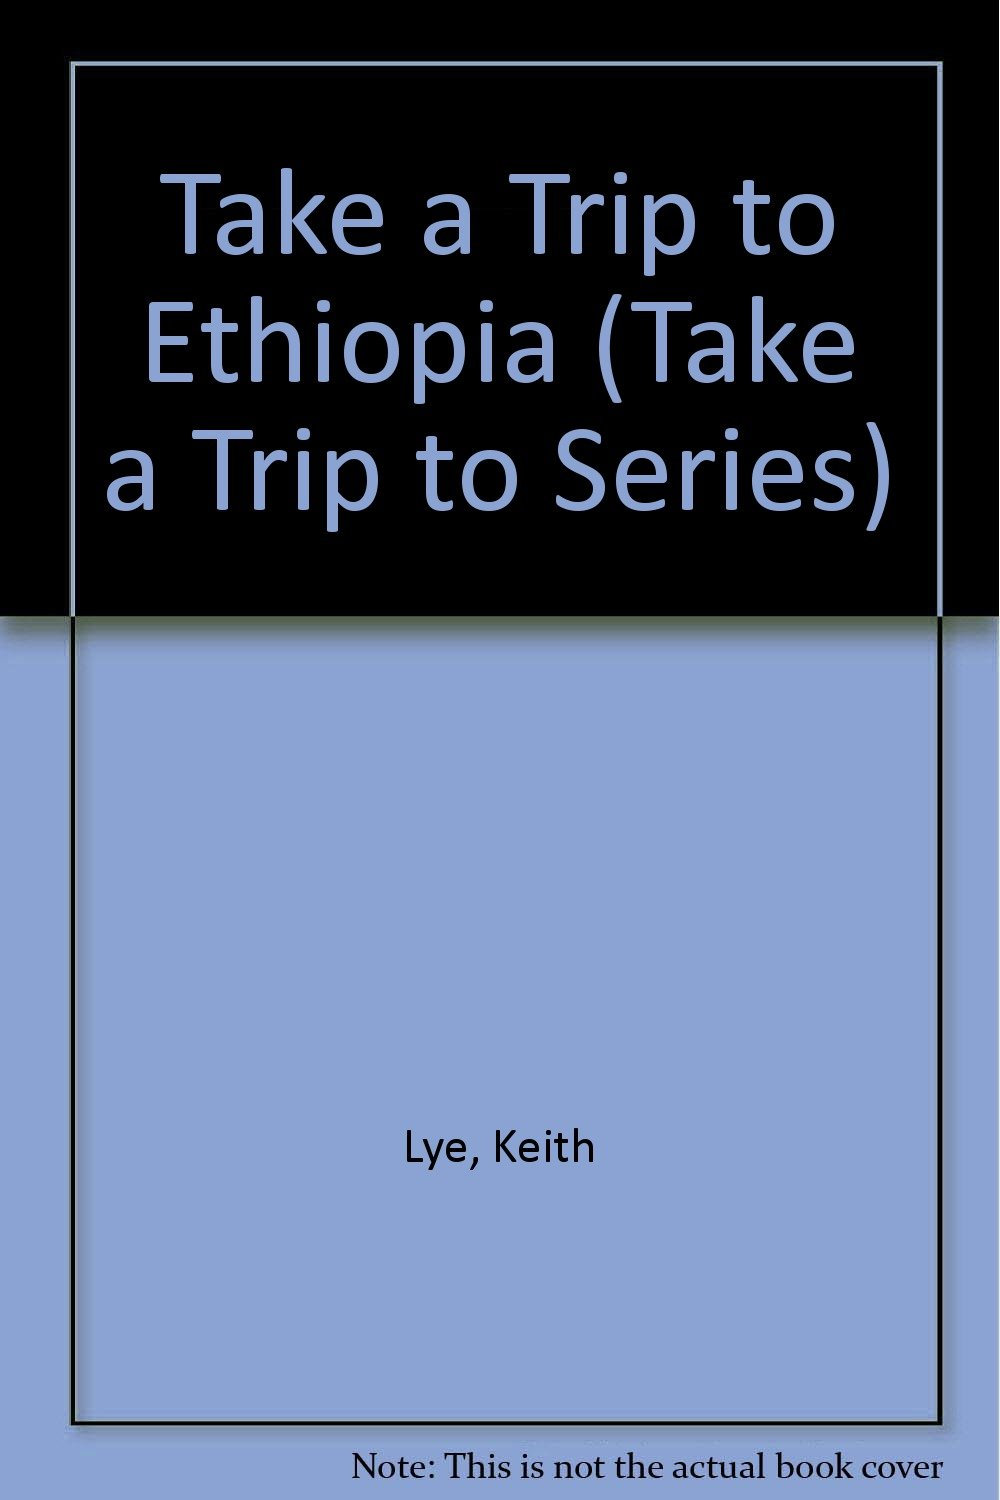 Take a Trip to Ethiopia (Take a Trip to Series)